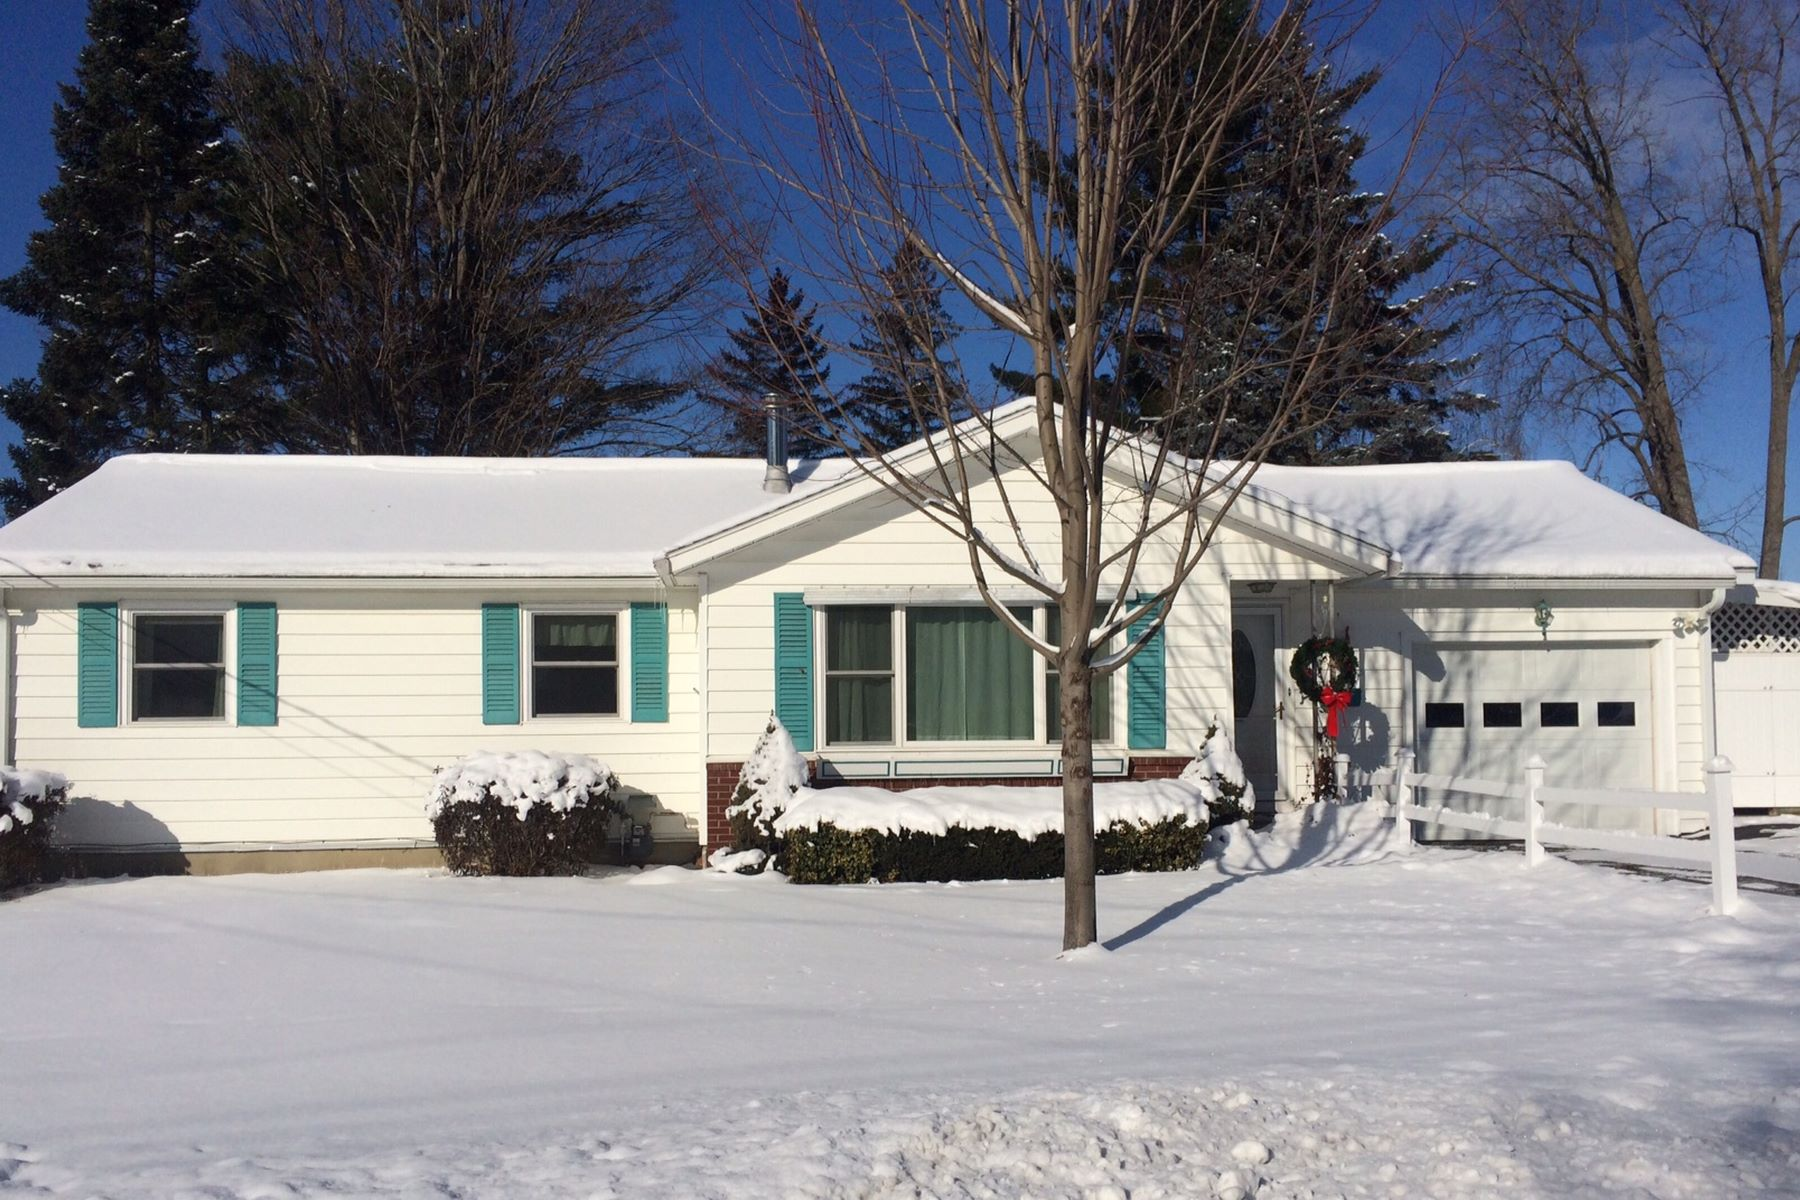 Single Family Home for Sale at 16 Upland Road, Essex Junction 16 Upland Rd Essex Junction, Vermont 05452 United States